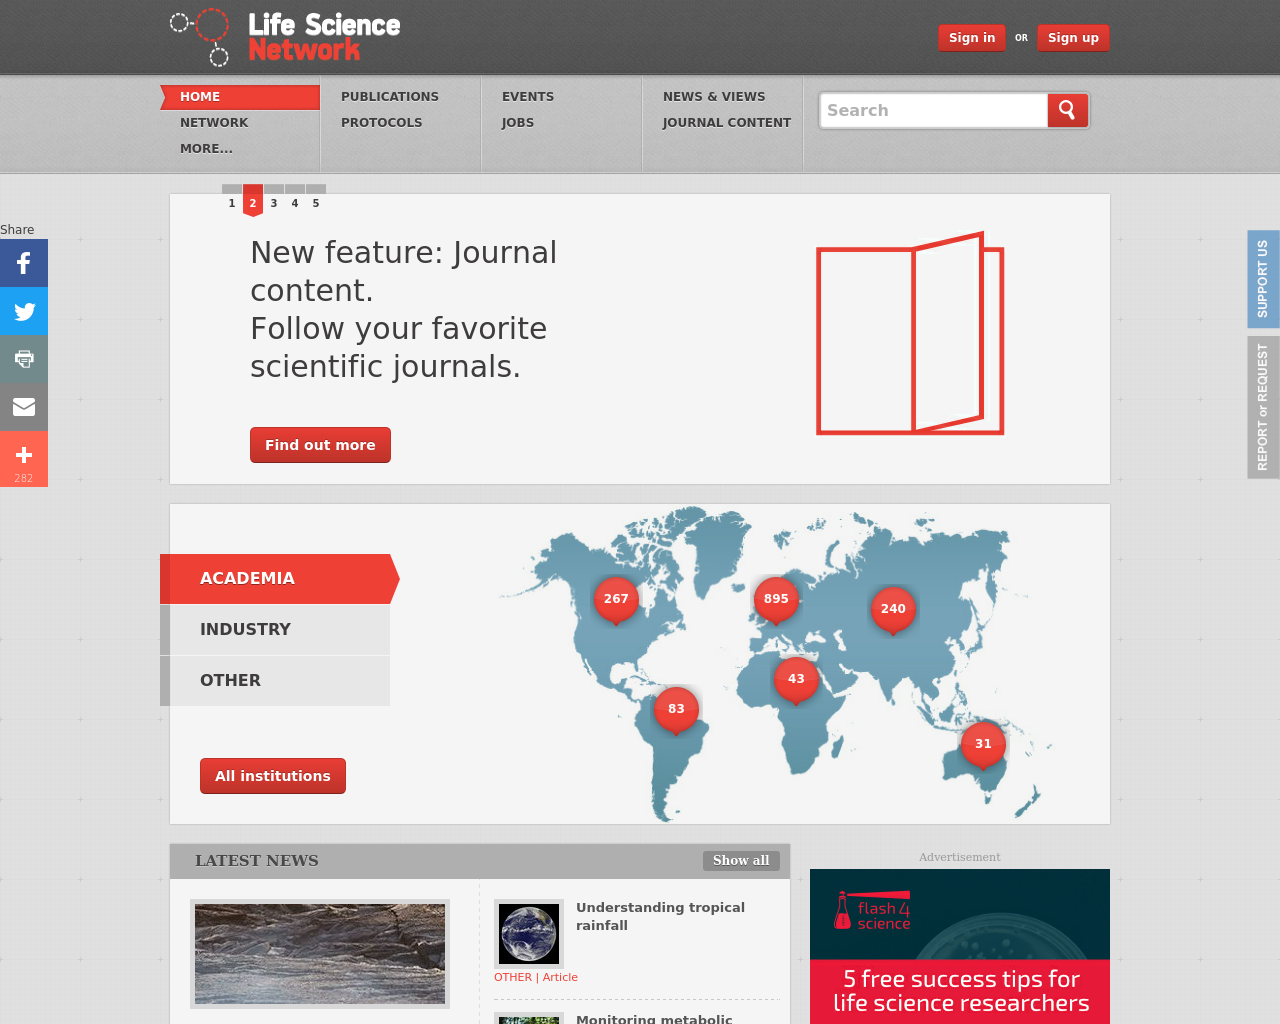 Life-Science-Network-Advertising-Reviews-Pricing